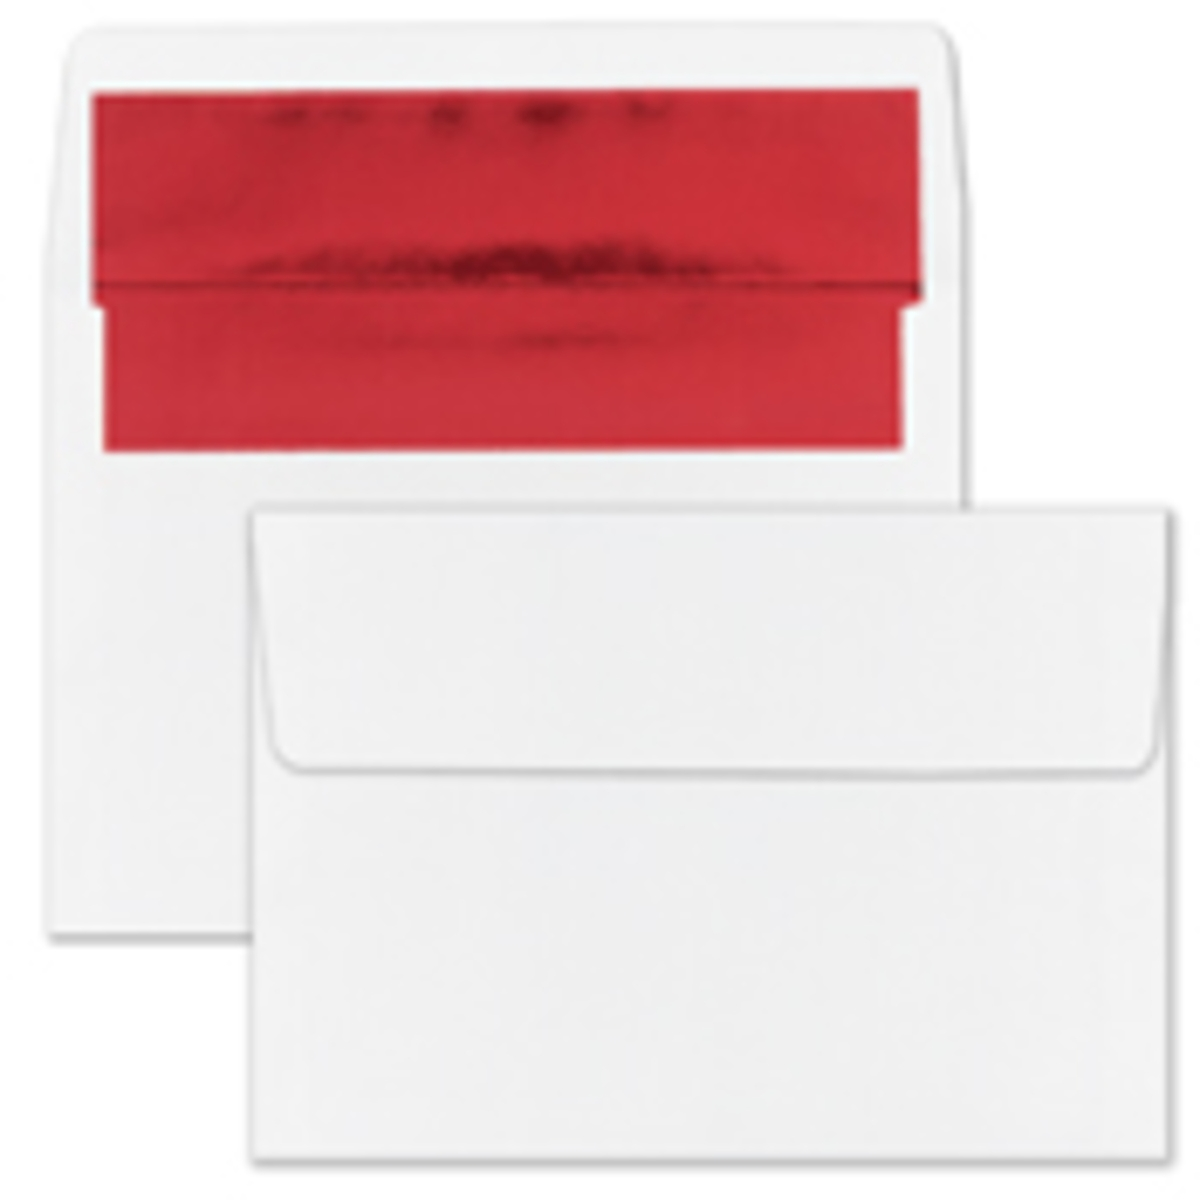 Recycled Shiny Red Foil Lined White Envelope - Blank